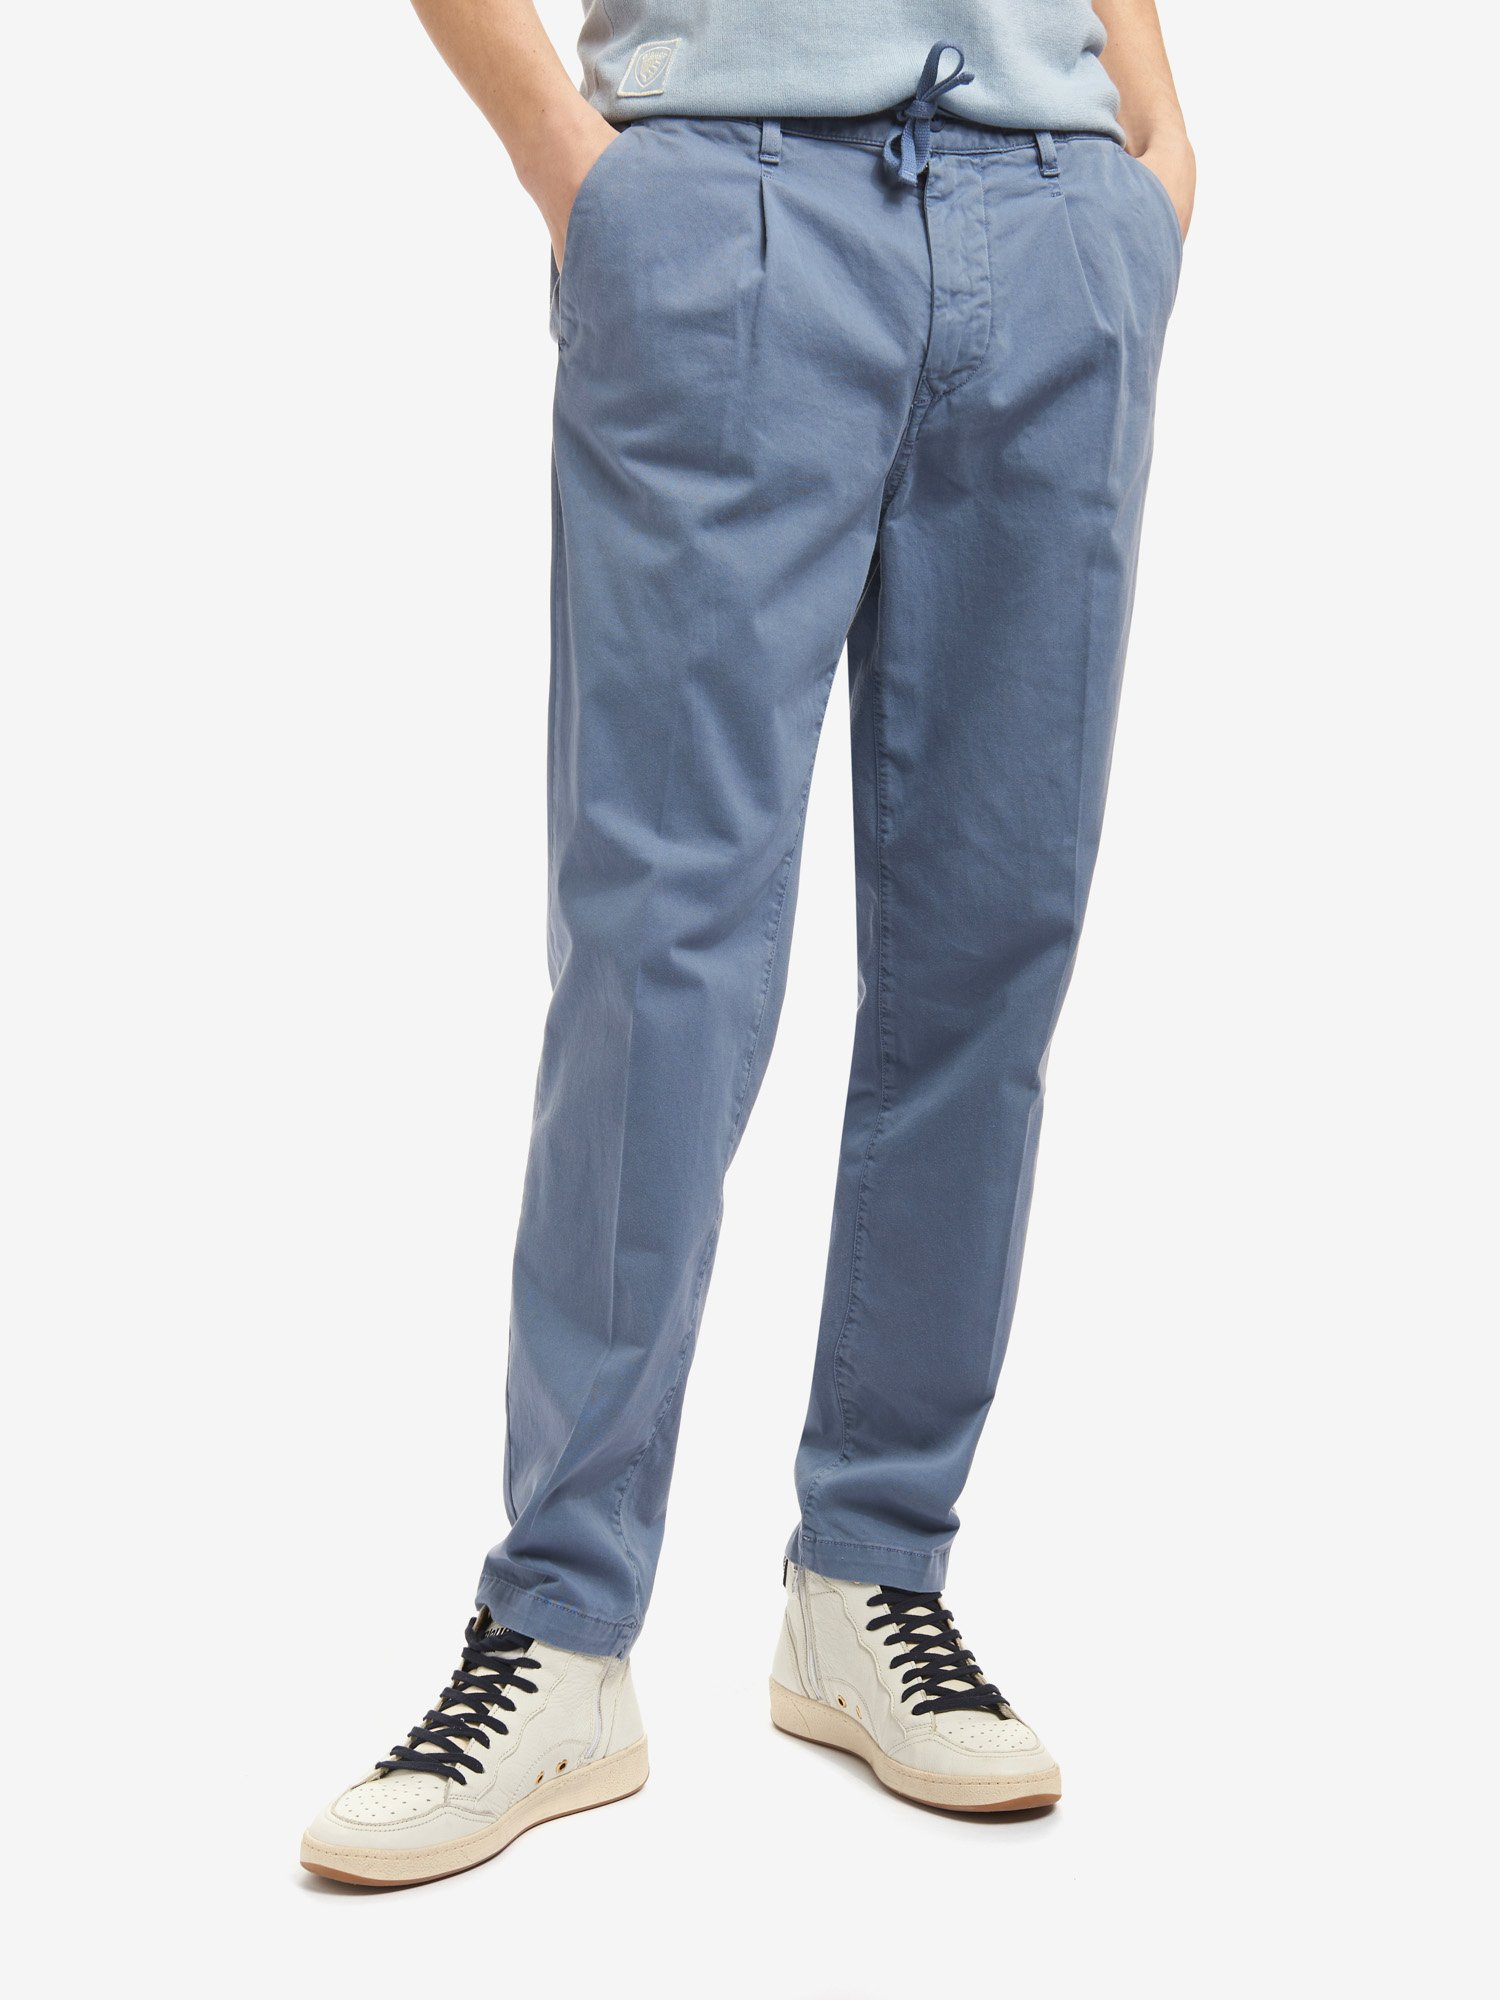 TROUSERS WITH GATHERED WAIST - Blauer